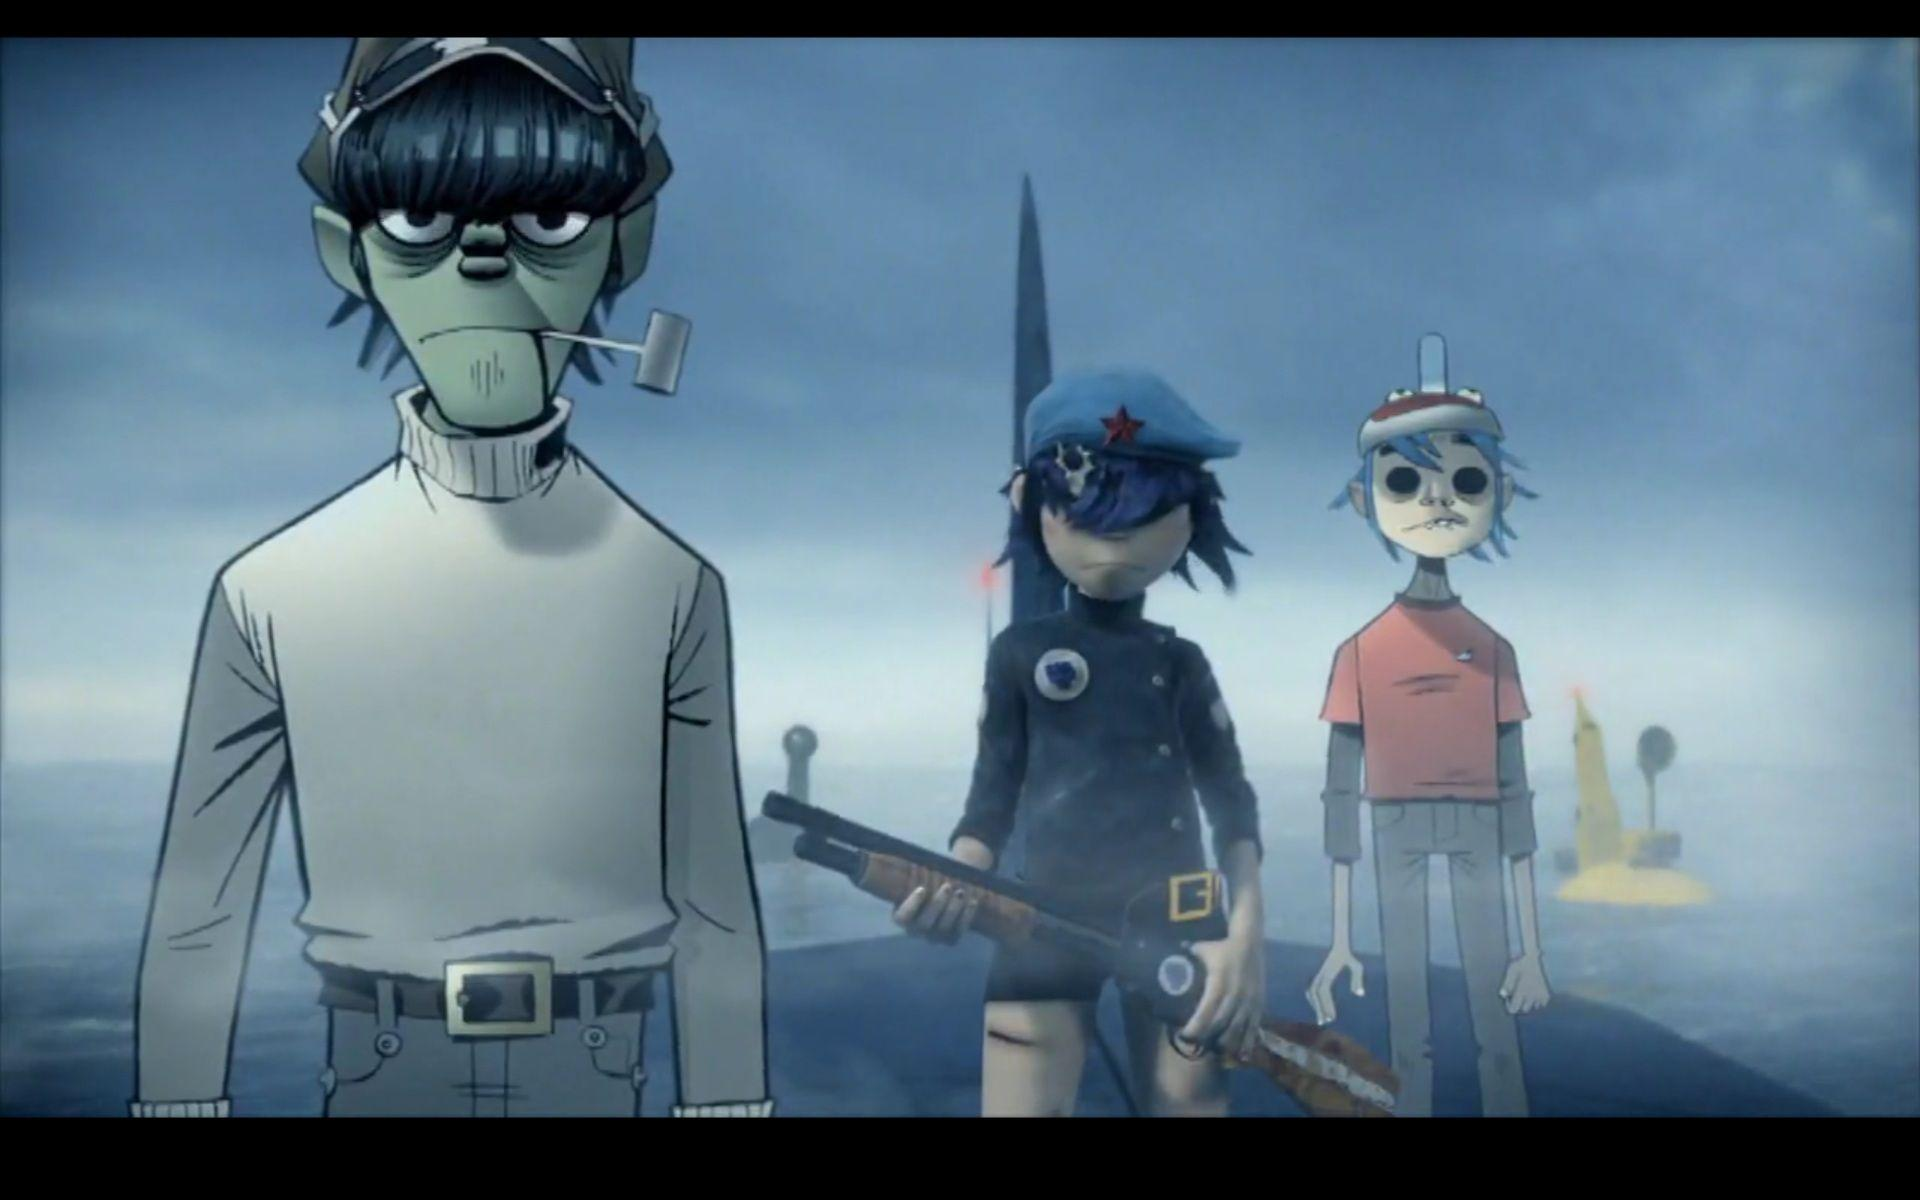 download wallpaper gorillaz desktop - photo #27